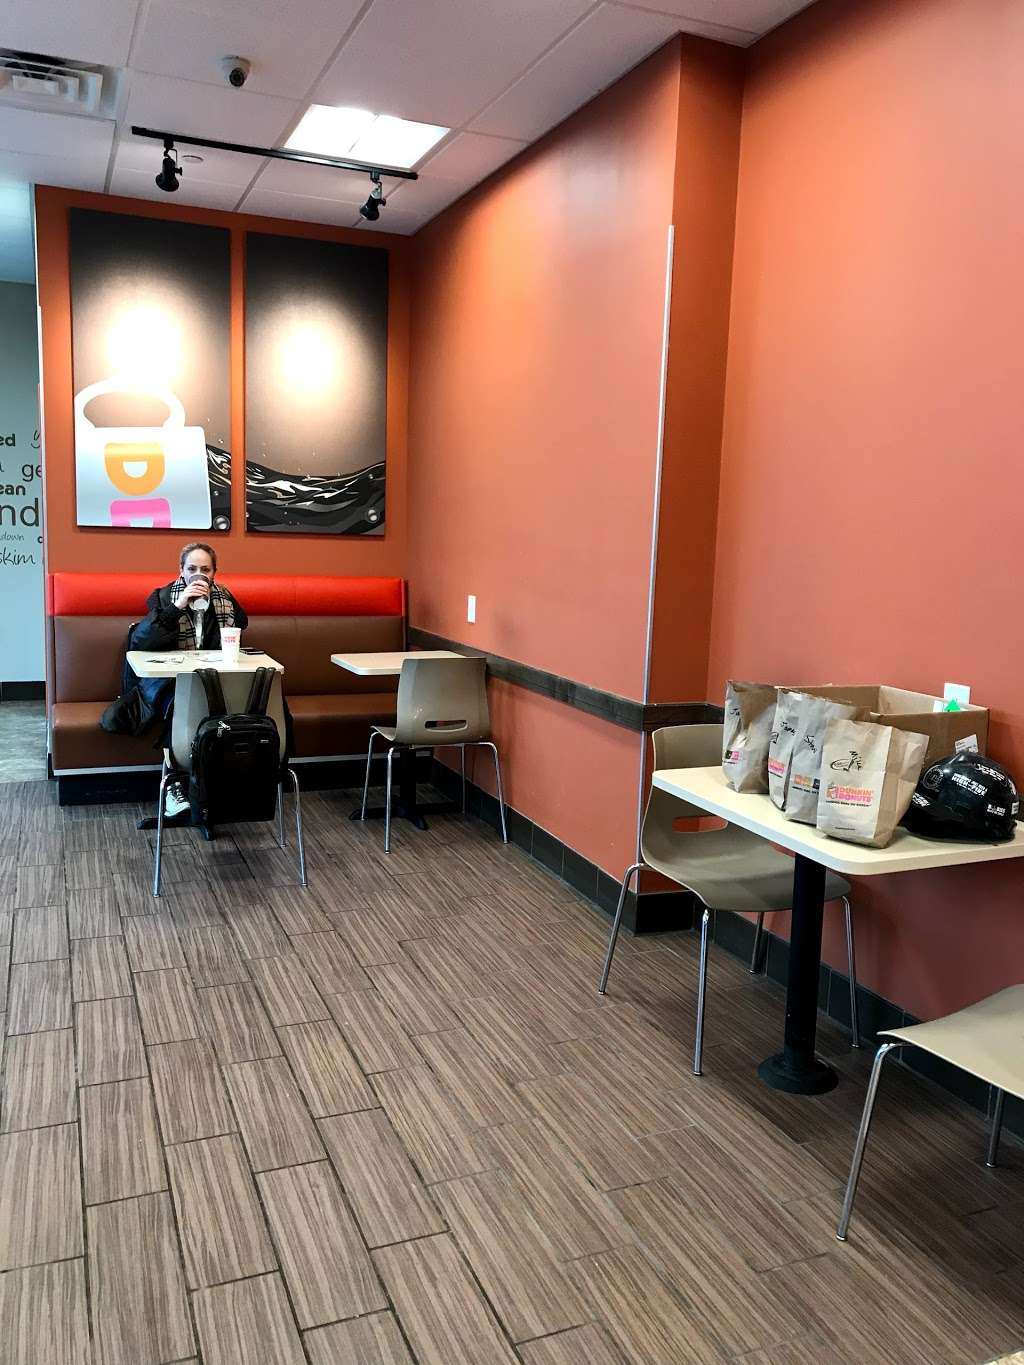 Dunkin Donuts - cafe  | Photo 5 of 10 | Address: 500 Ave at Port Imperial, Weehawken, NJ 07086, USA | Phone: (201) 766-1432